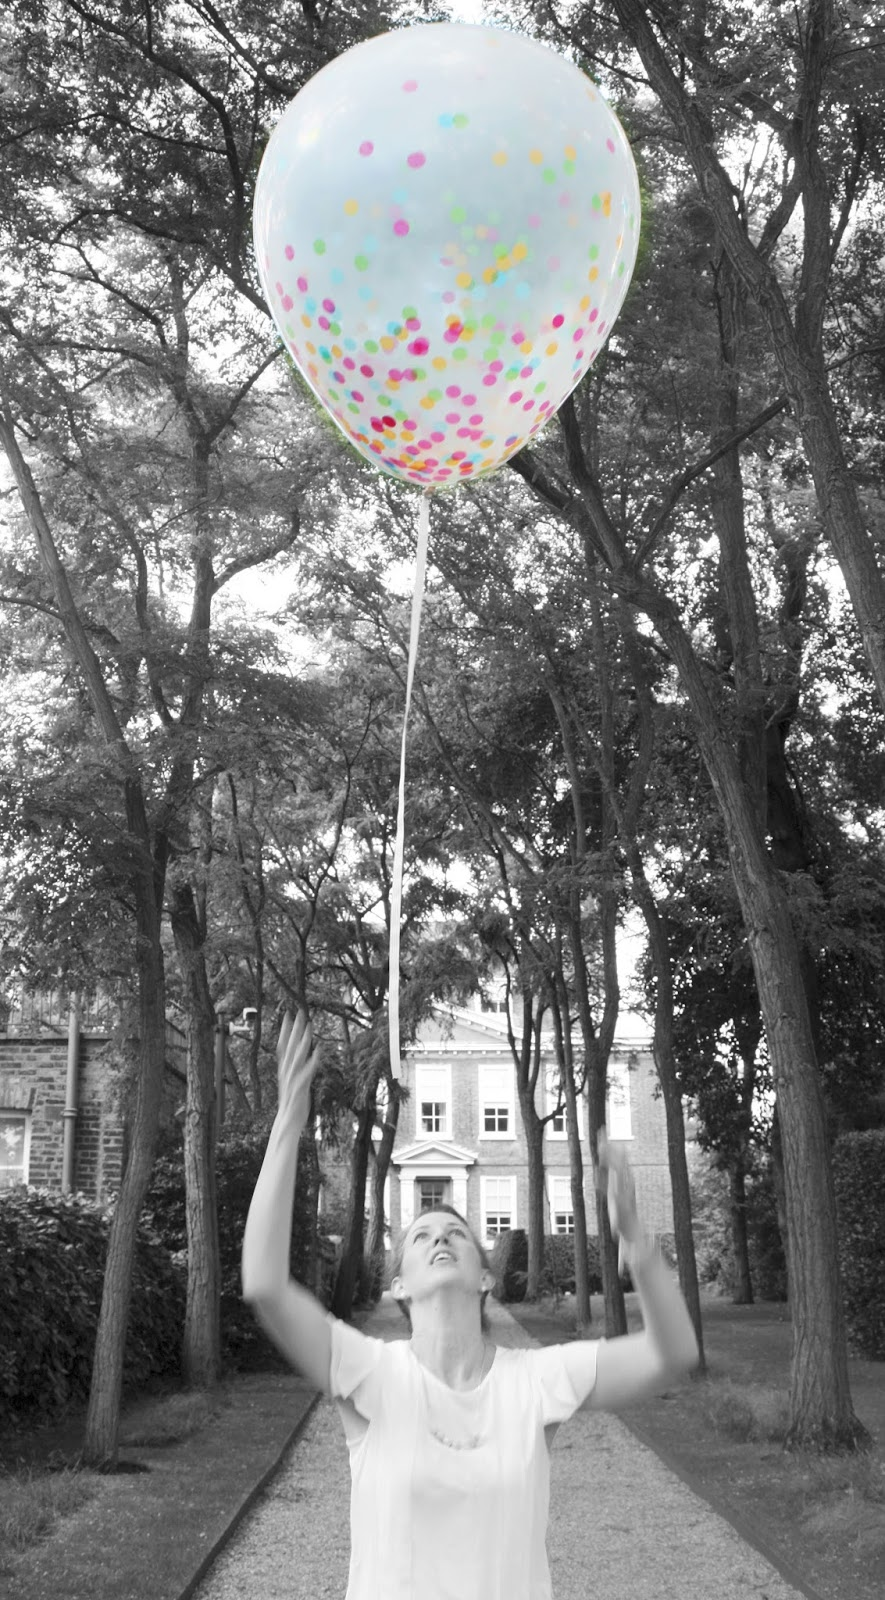 meg-made giant confetti balloon giant confetti filled balloon